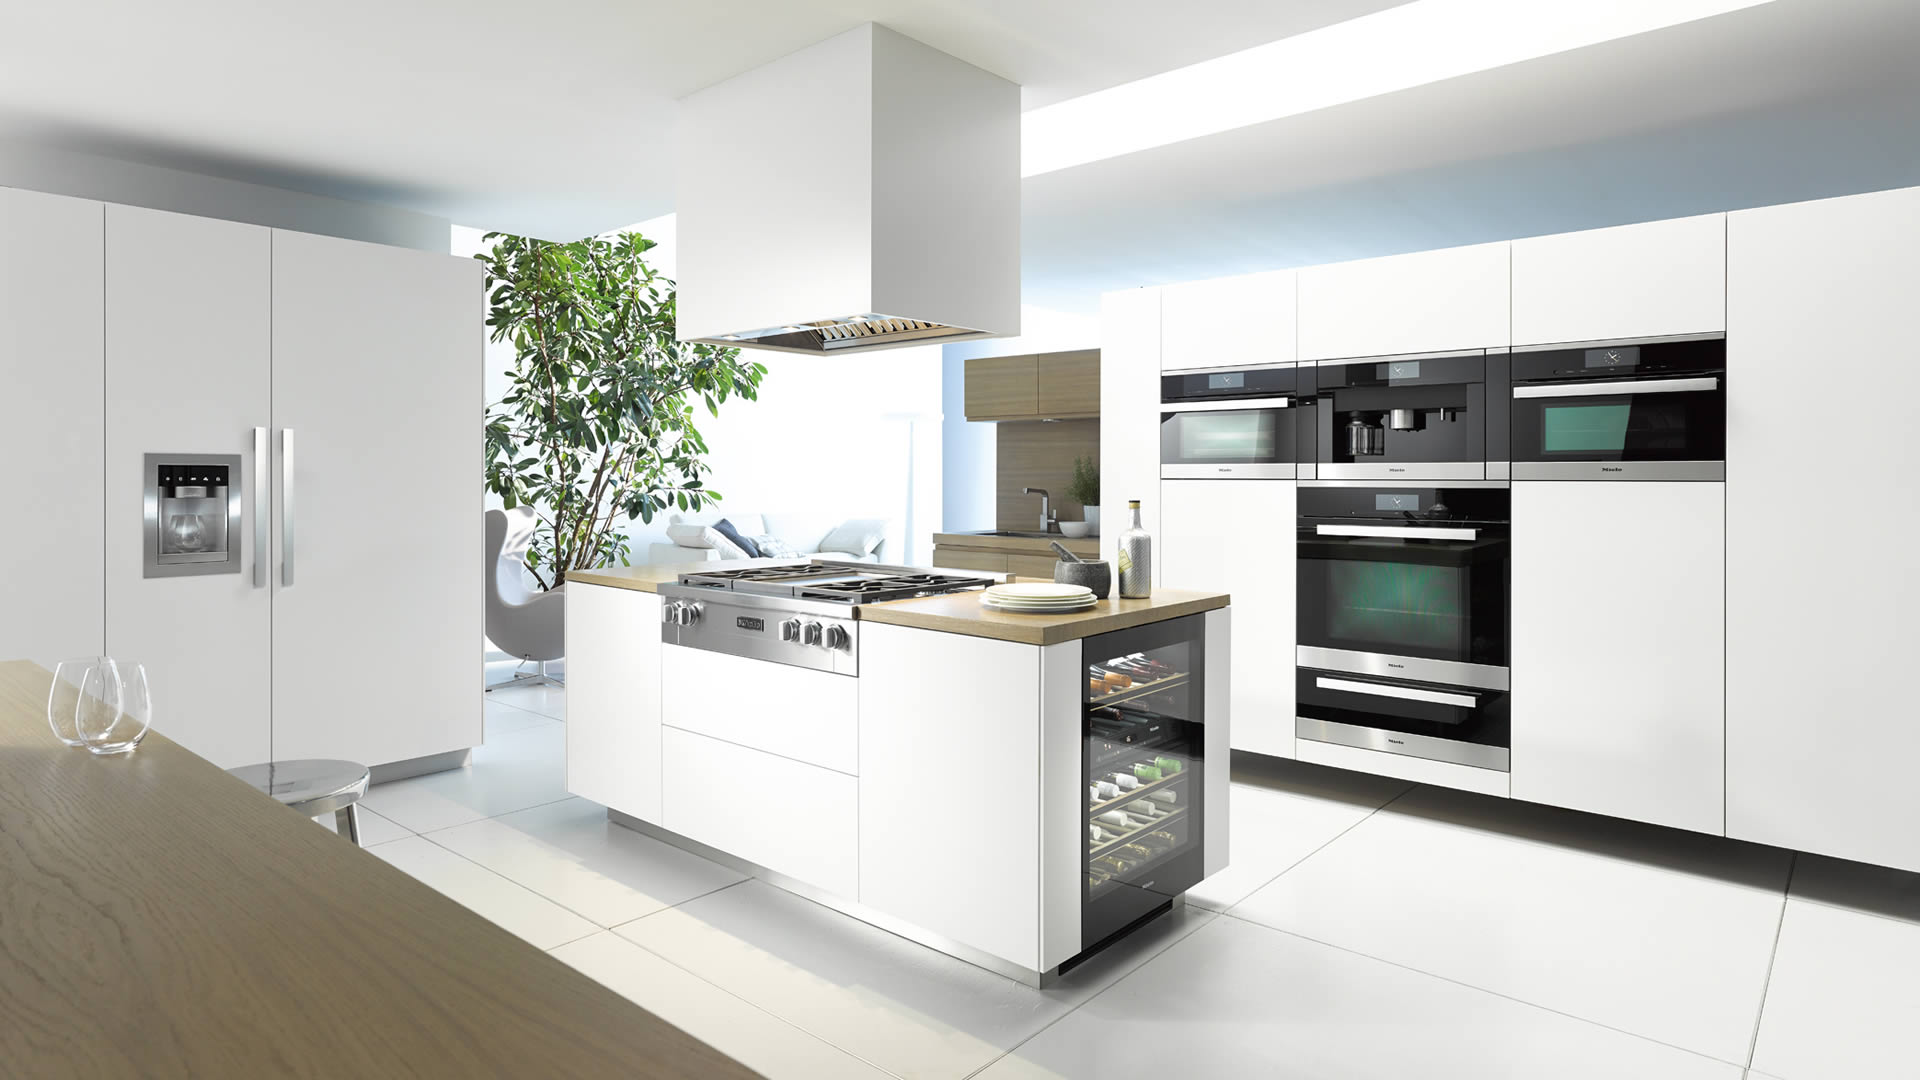 Innovative Products German Design And Surging Sales We Talk To Miele The Company That Seems